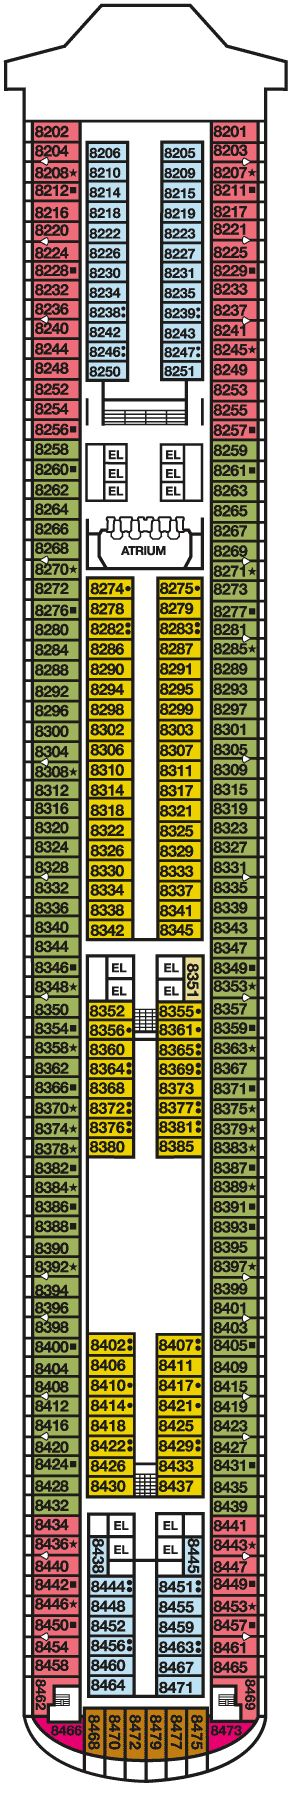 100 Carnival Inspiration Main Deck Plan